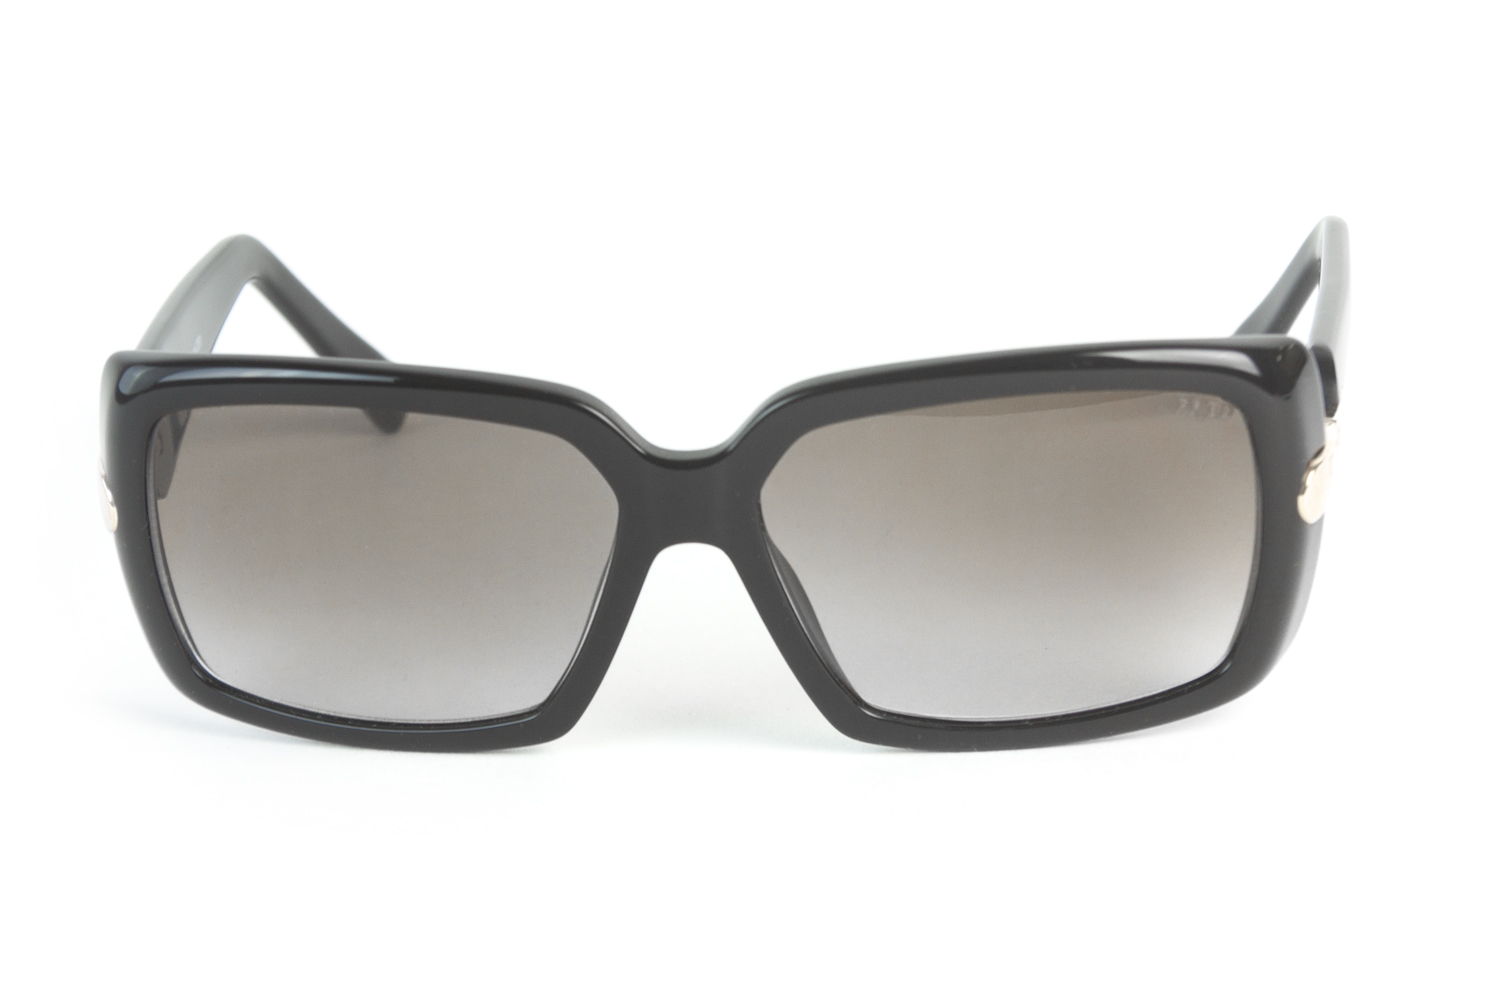 Fred-Lunettes-Marie-Galante-C2-Sunglasses-55mm-NEW thumbnail 3